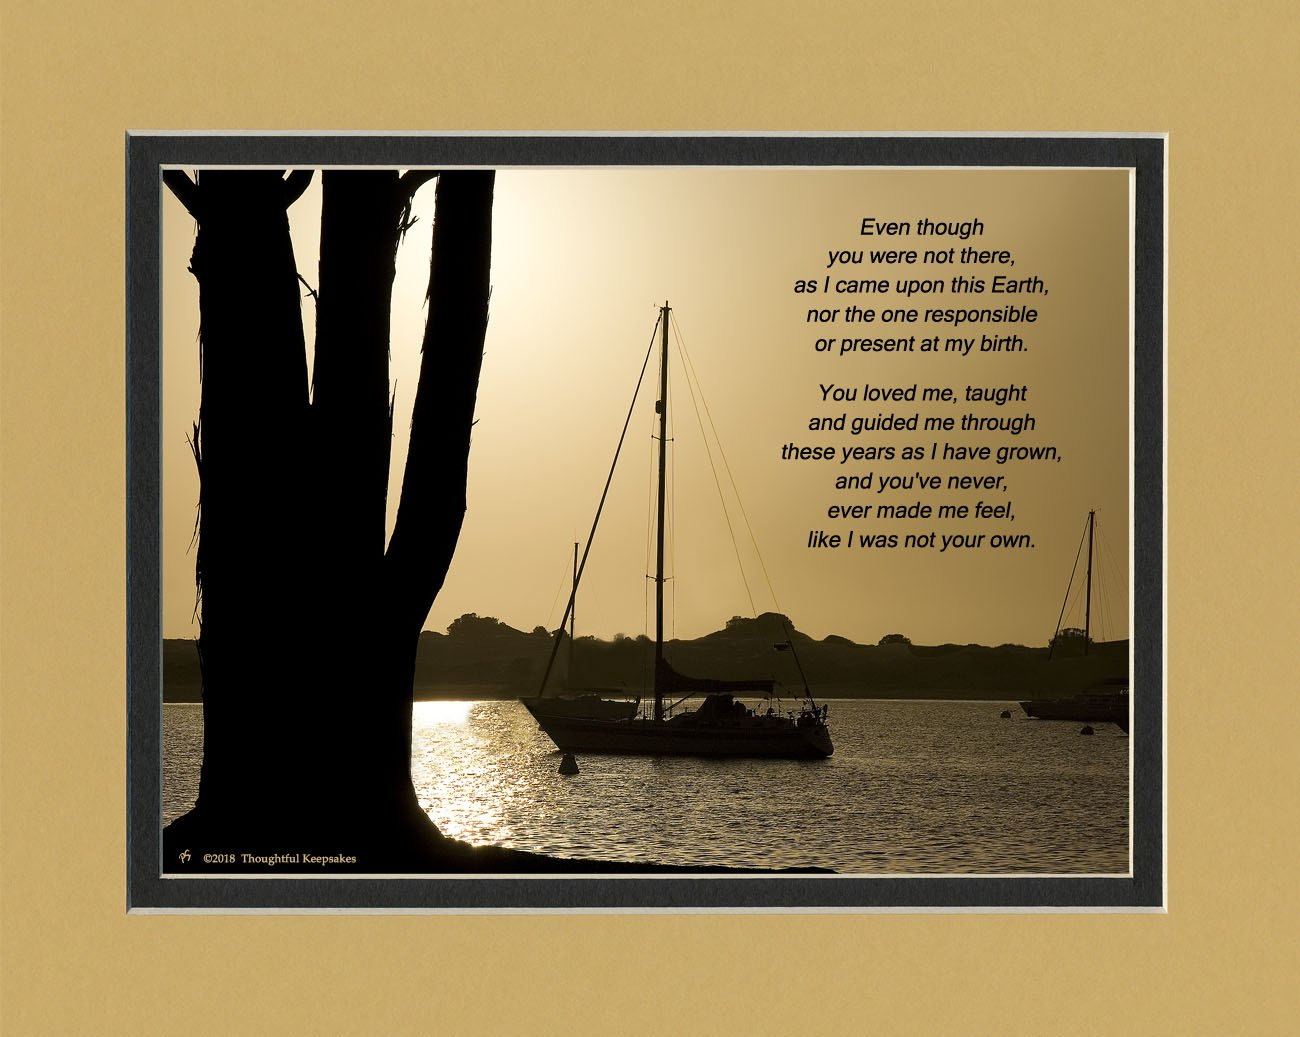 Stepdad or Stepmom Gift, Boats Photo''You loved me, taught and guided me through these years as I have grown'' Poem. Stepfather or Stepmother Fathers Day Mothers Day Christmas Birthday Thank you Gifts